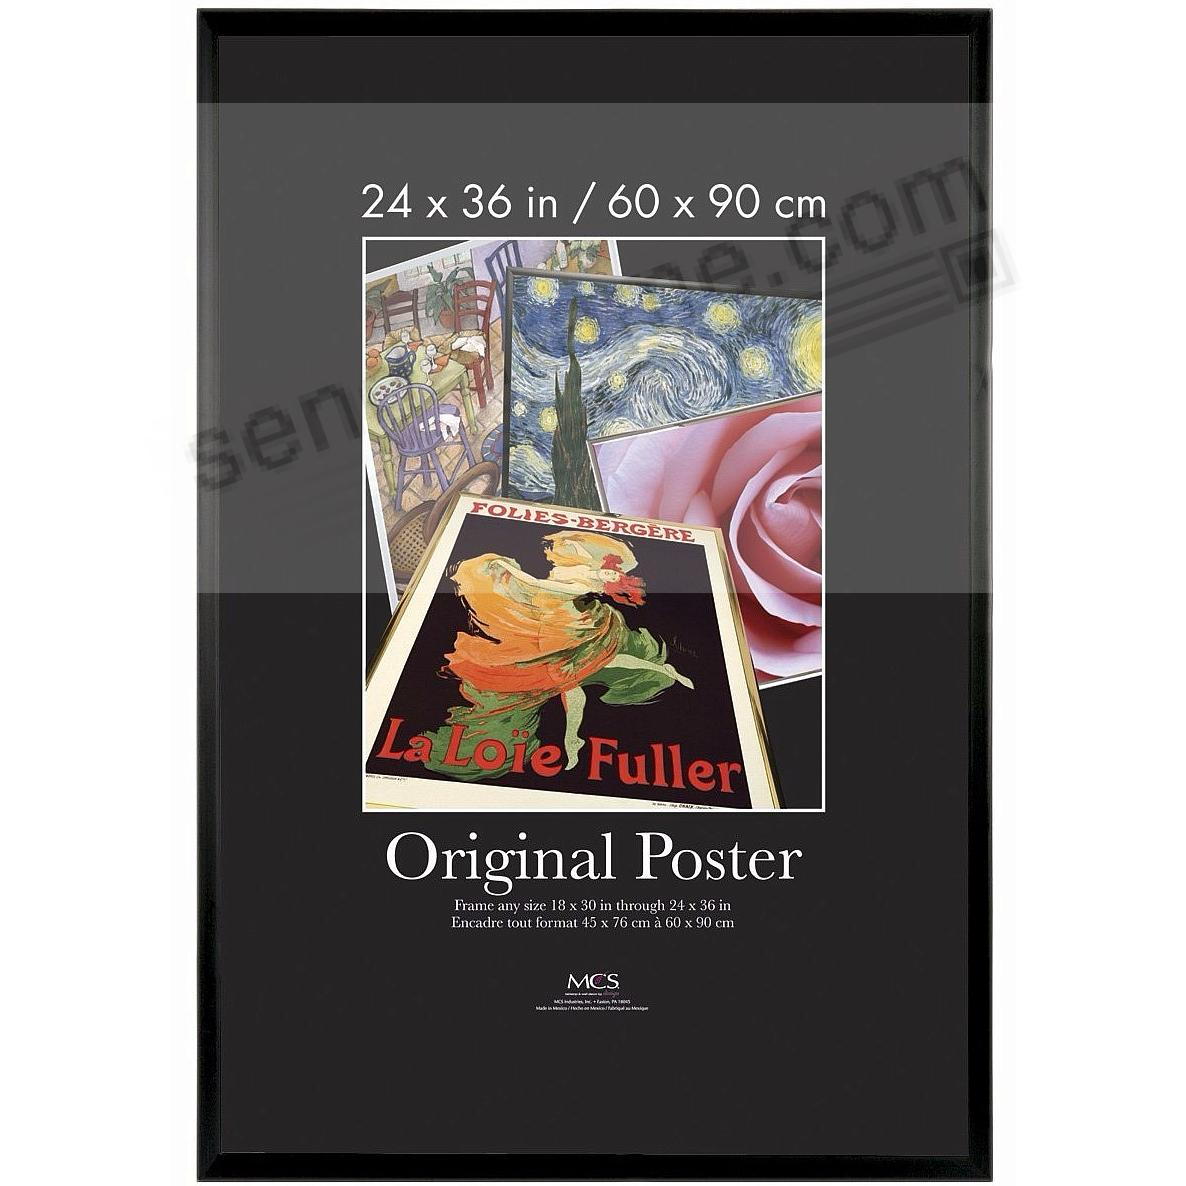 Black plastic POSTER size 24x36 frame with masonite backing